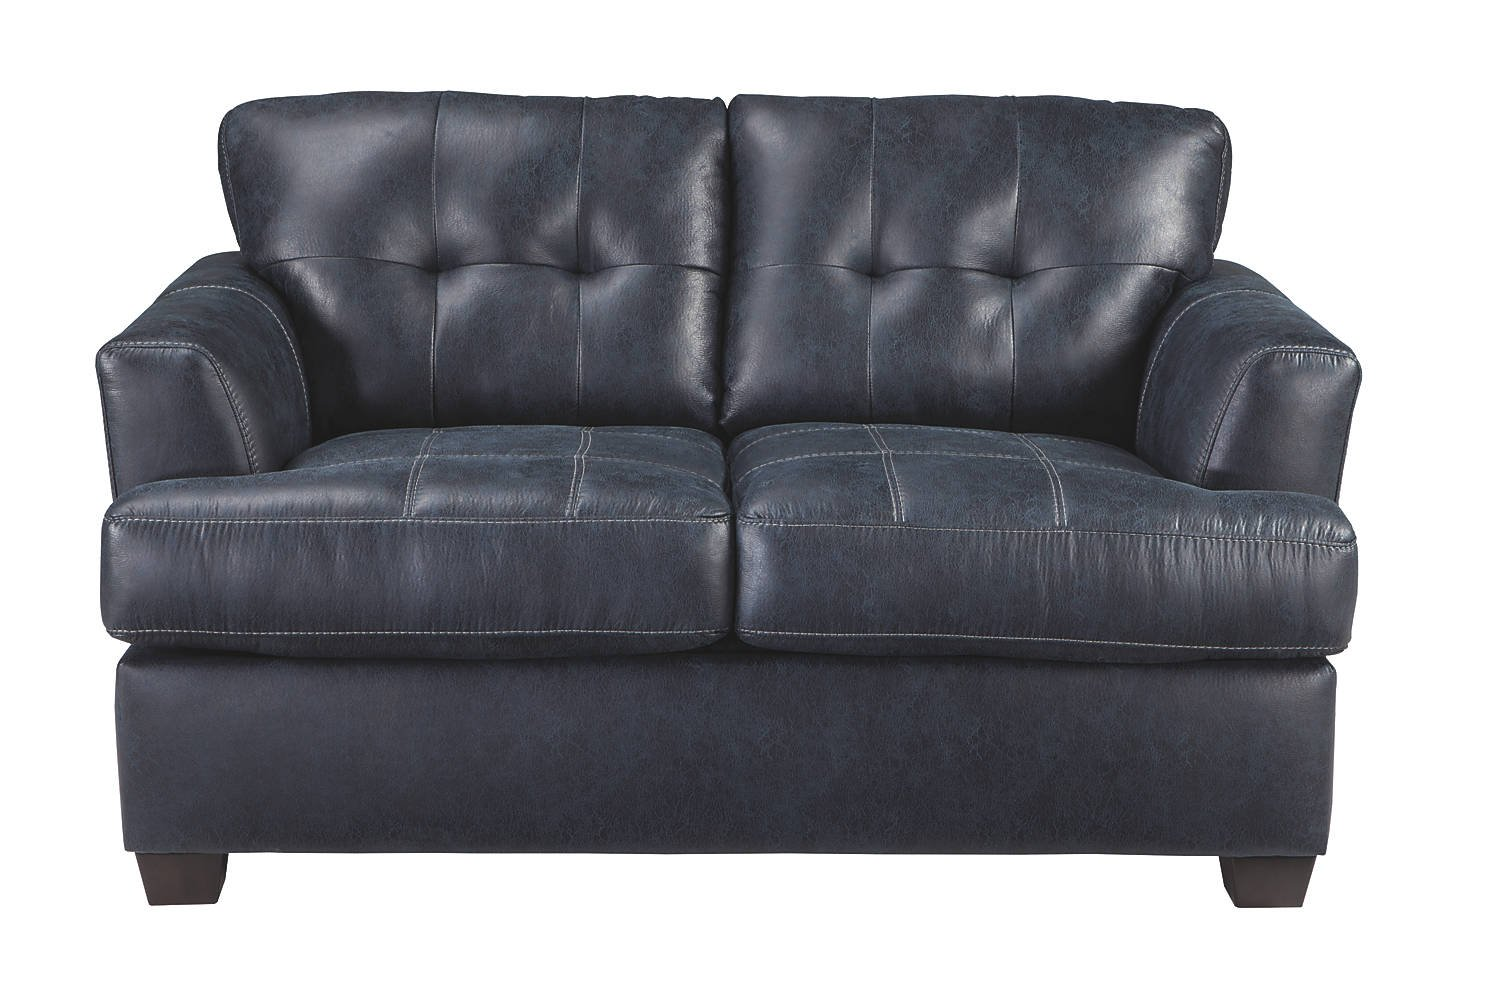 Ashley Inmon 6580635 63'' Loveseat with Faux Leather Low Melt Fiber Wrapped Over Foam and Contemporary Style in